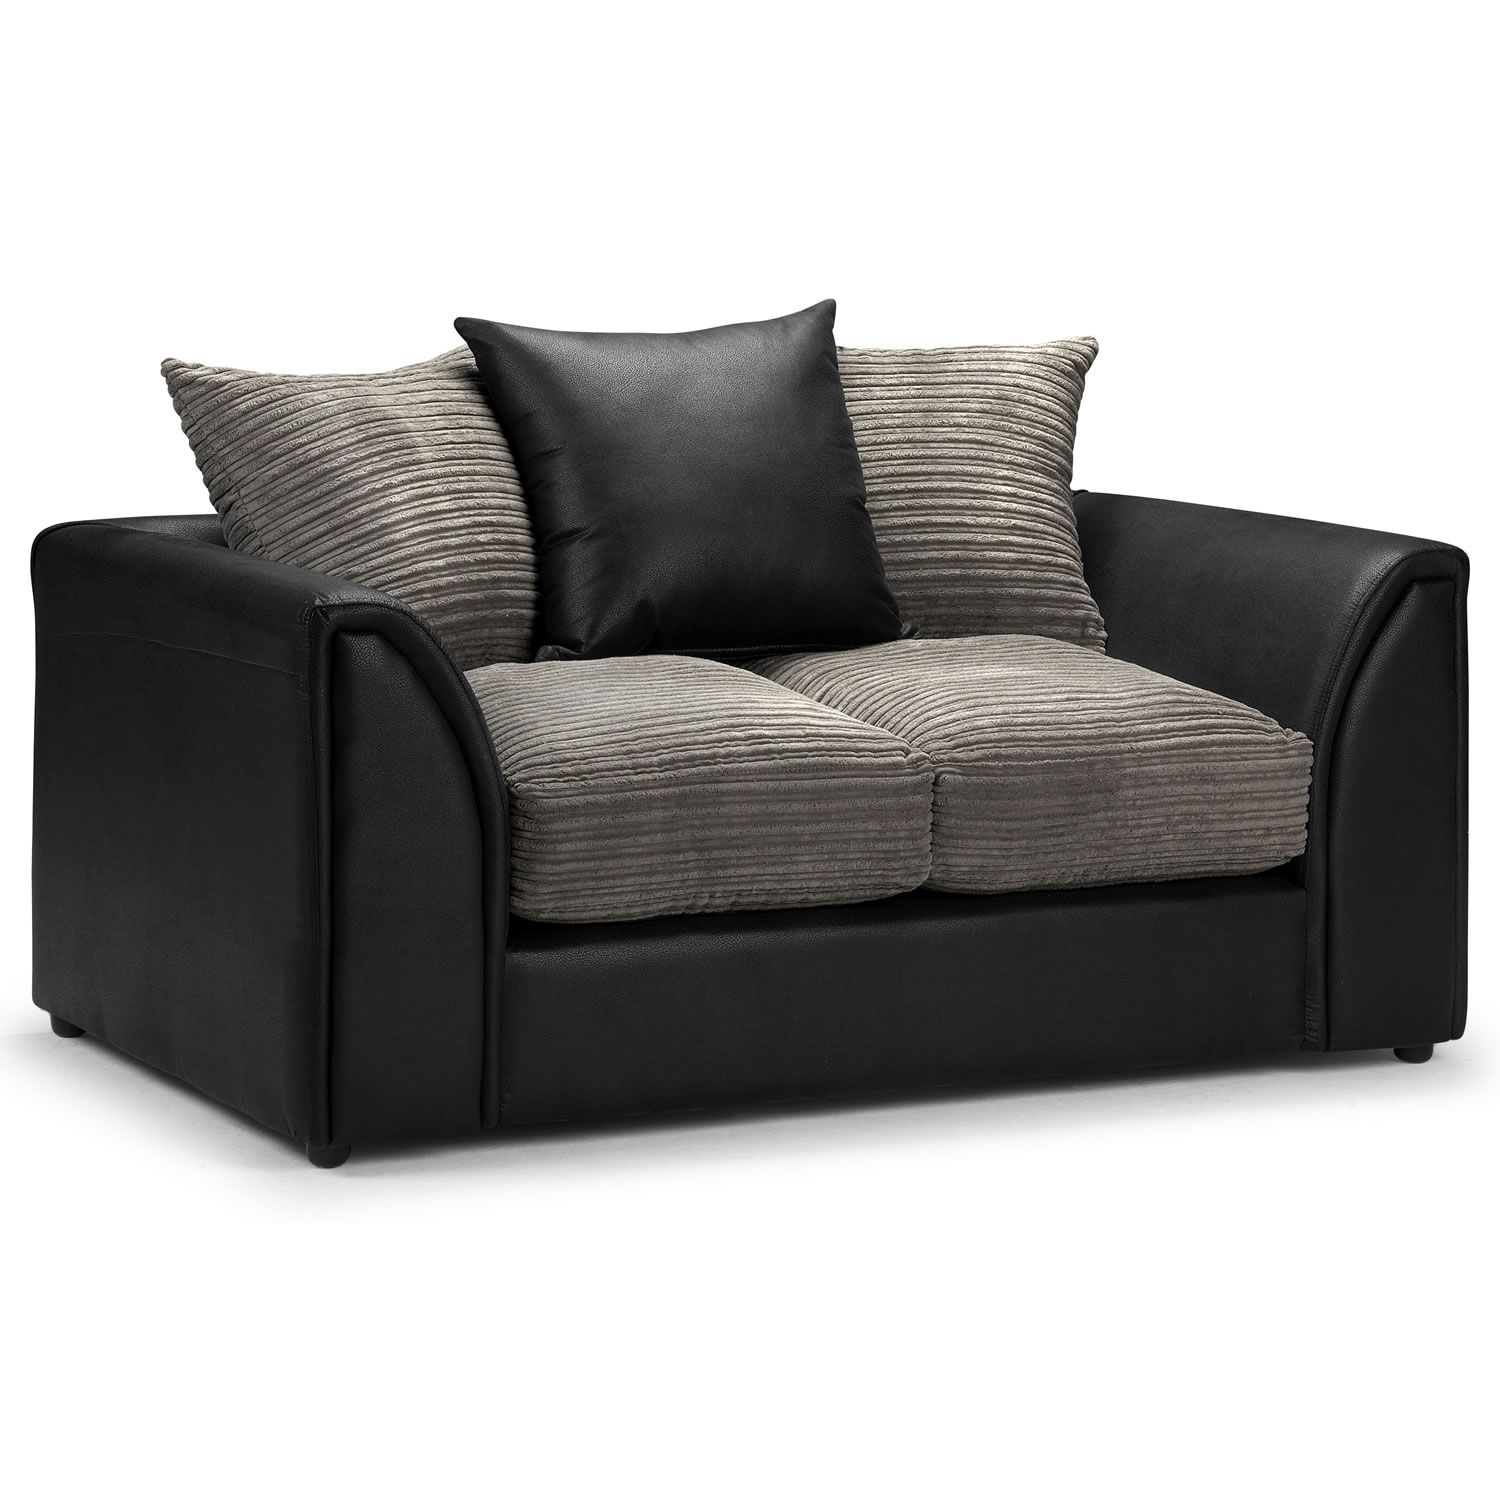 Spend Quality Time With Your Better Half On A Two Seater Sofa Byron 3 And 2 Seater Sofa Suite Next Day Delivery Byron 3 Abbftw 2 Seater Sofa Seater Sofa Sofa